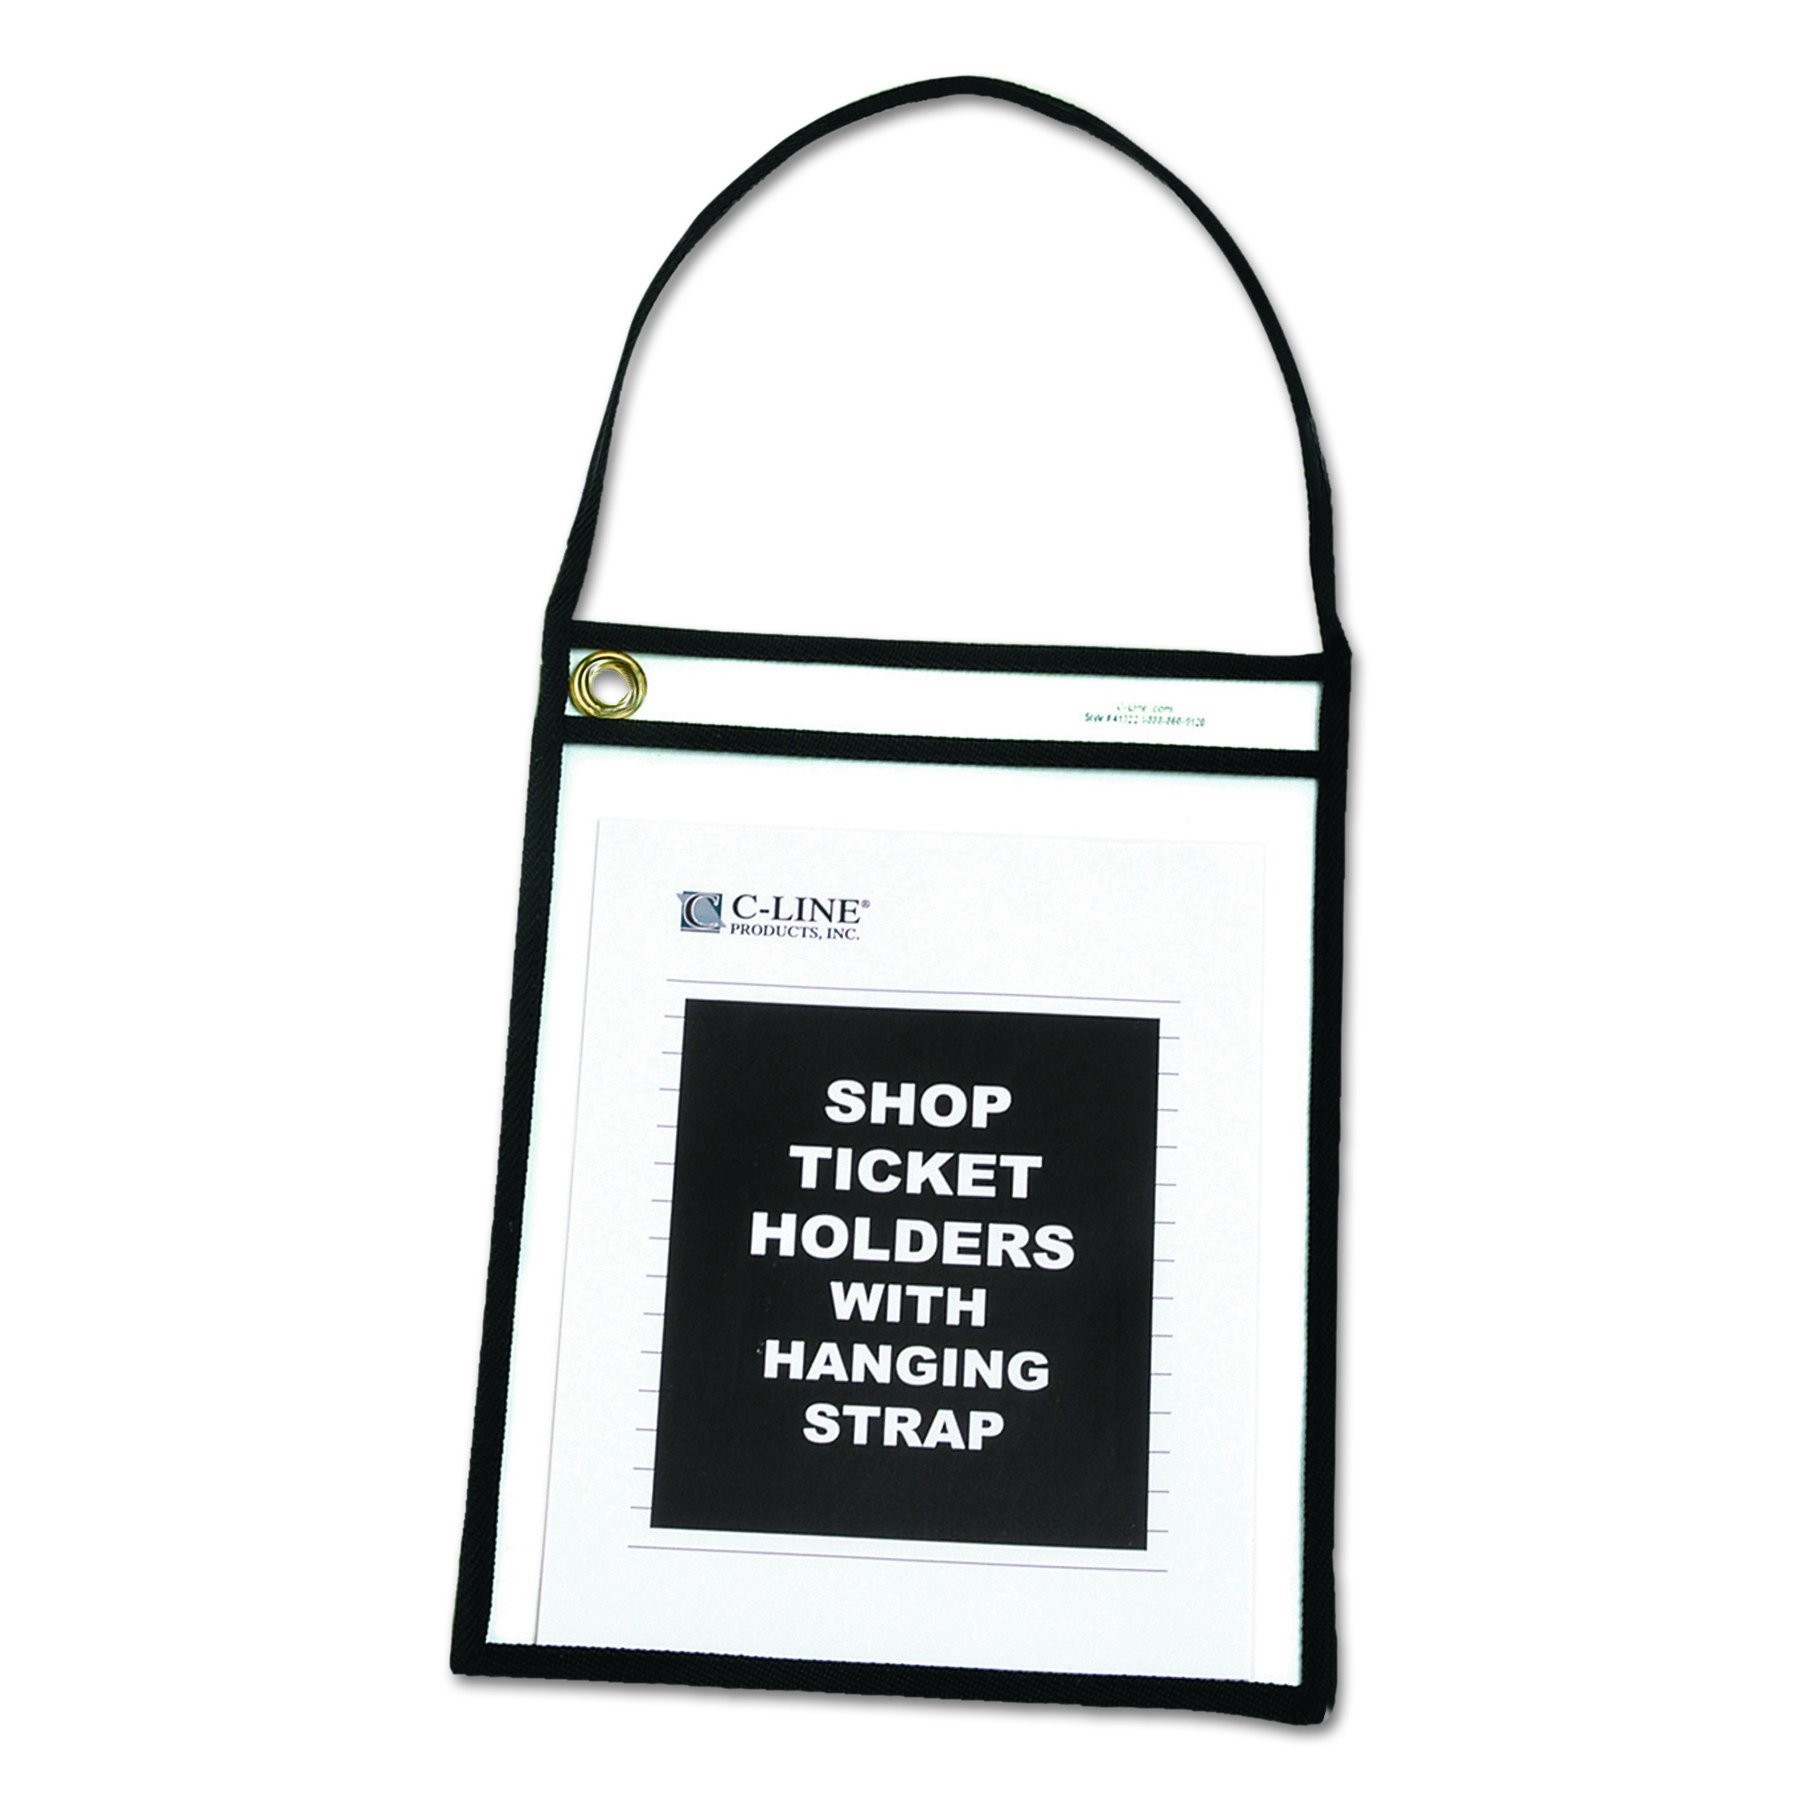 C-Line Shop Ticket Holders with Straps, Stitched, Black, Both Sides Clear, 9'' x 12'', Box of 15 (41922) by C-Line